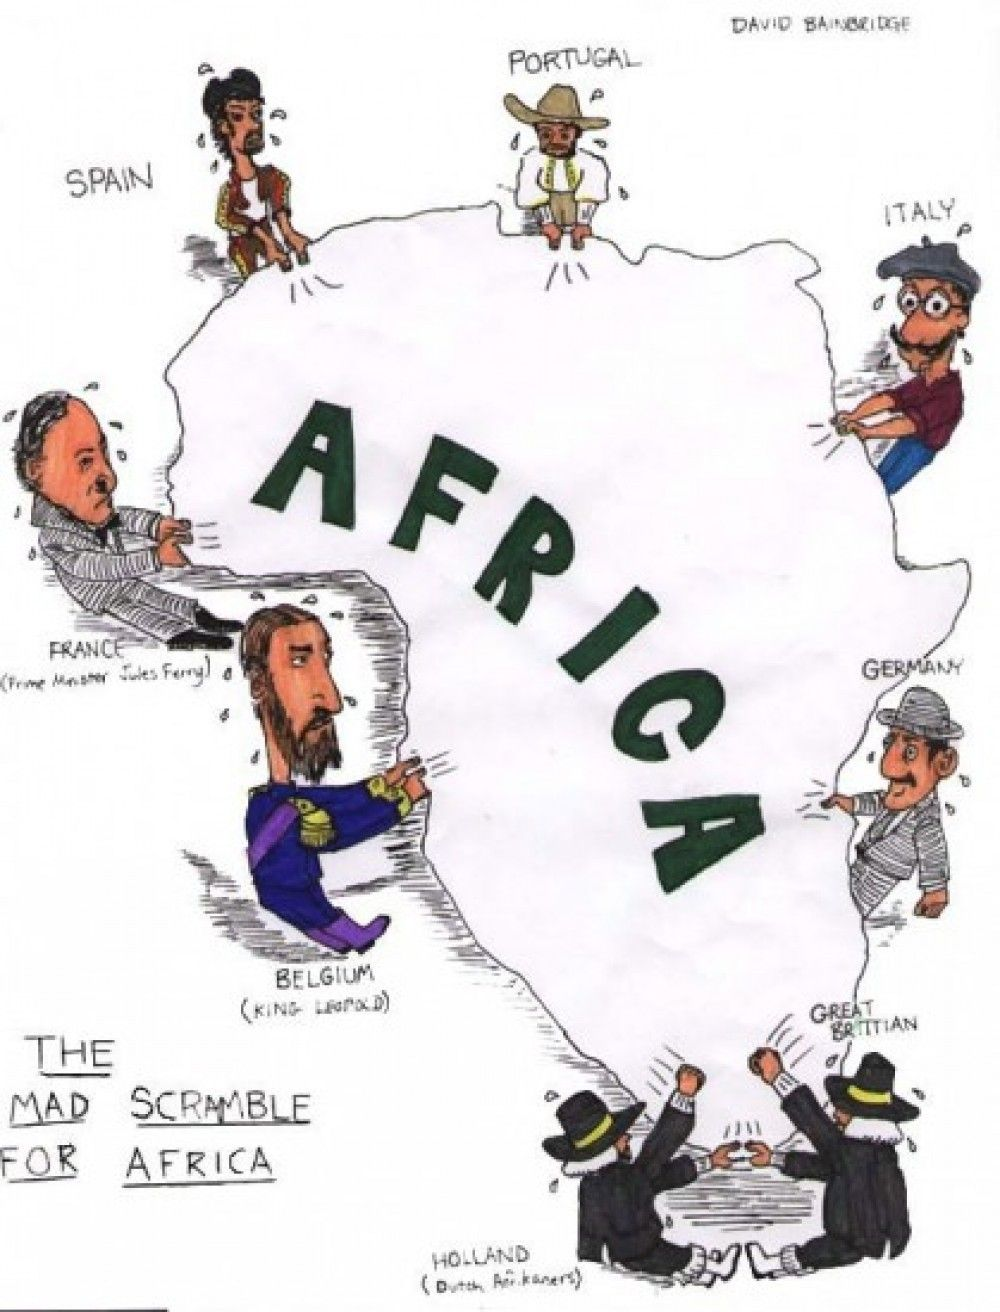 imperialism this cartoon shows how everyone was really greedy imperialism this cartoon shows how everyone was really greedy and wanted their own piece of